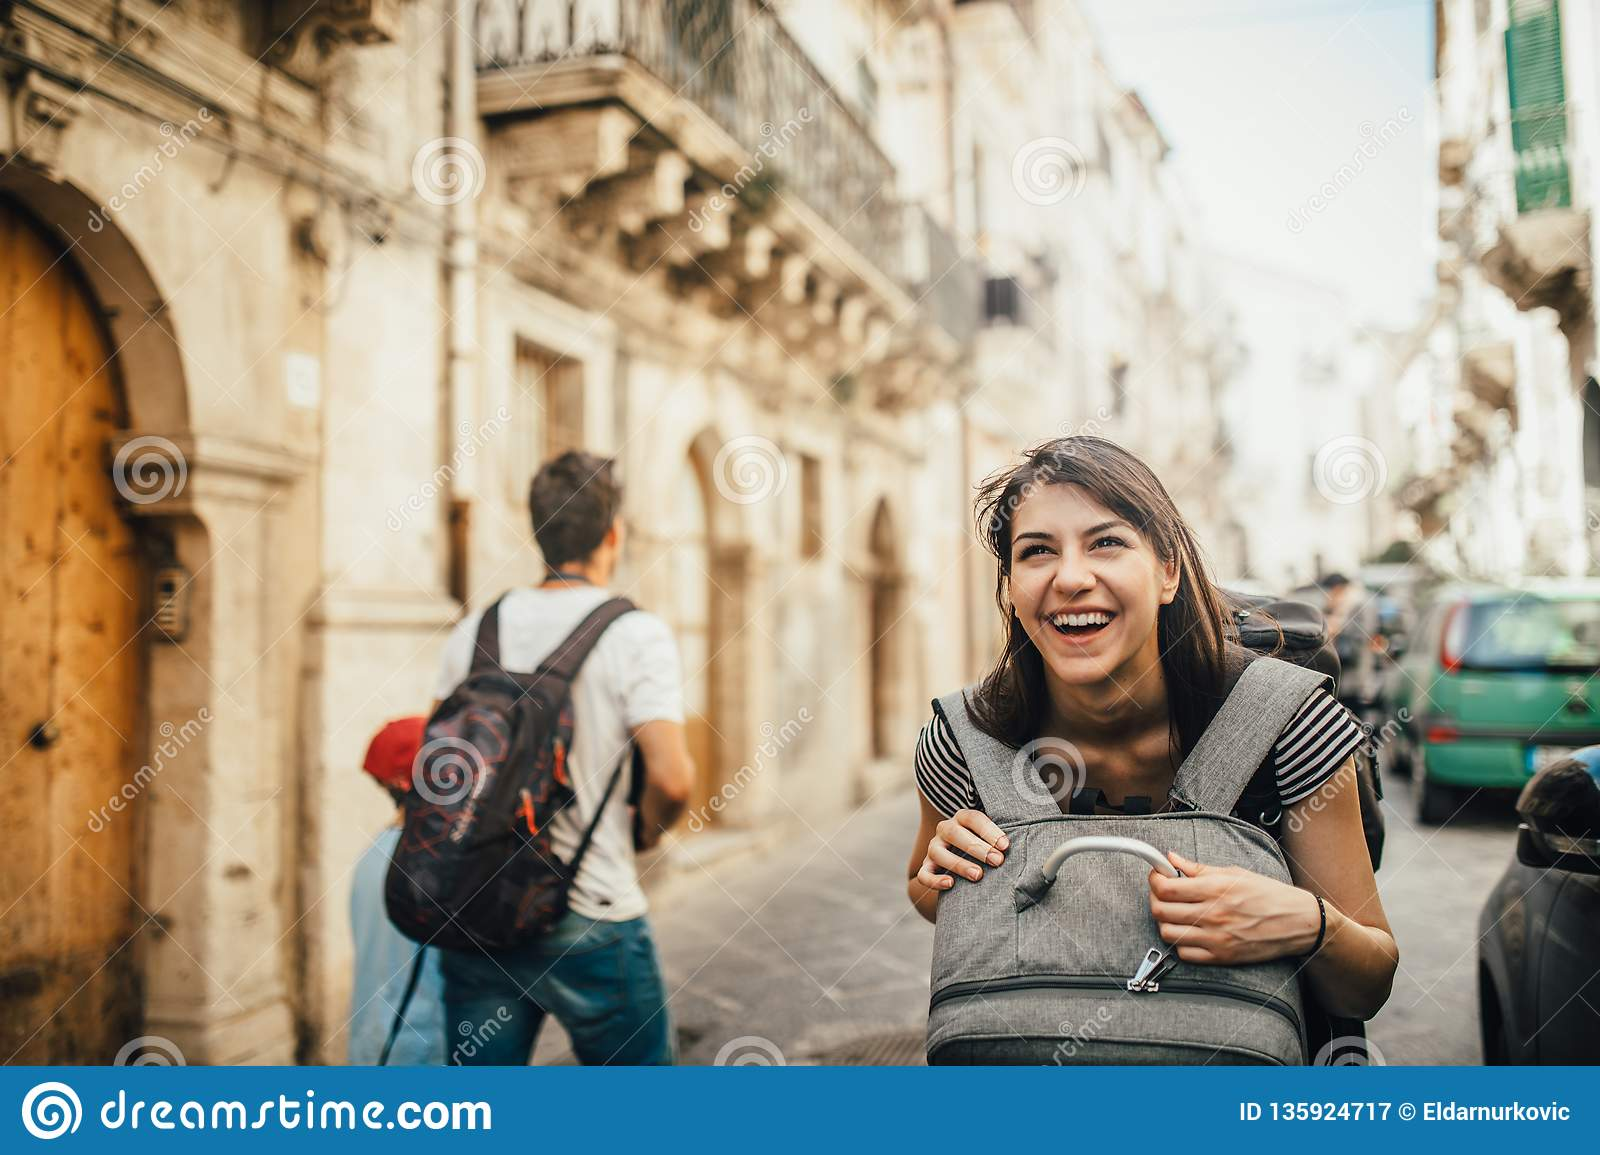 Female tourist backpacker visiting Italy.Woman in Syracuse,Sicily.Old town of Syracuse, Ortigia island visitor.Travel destination